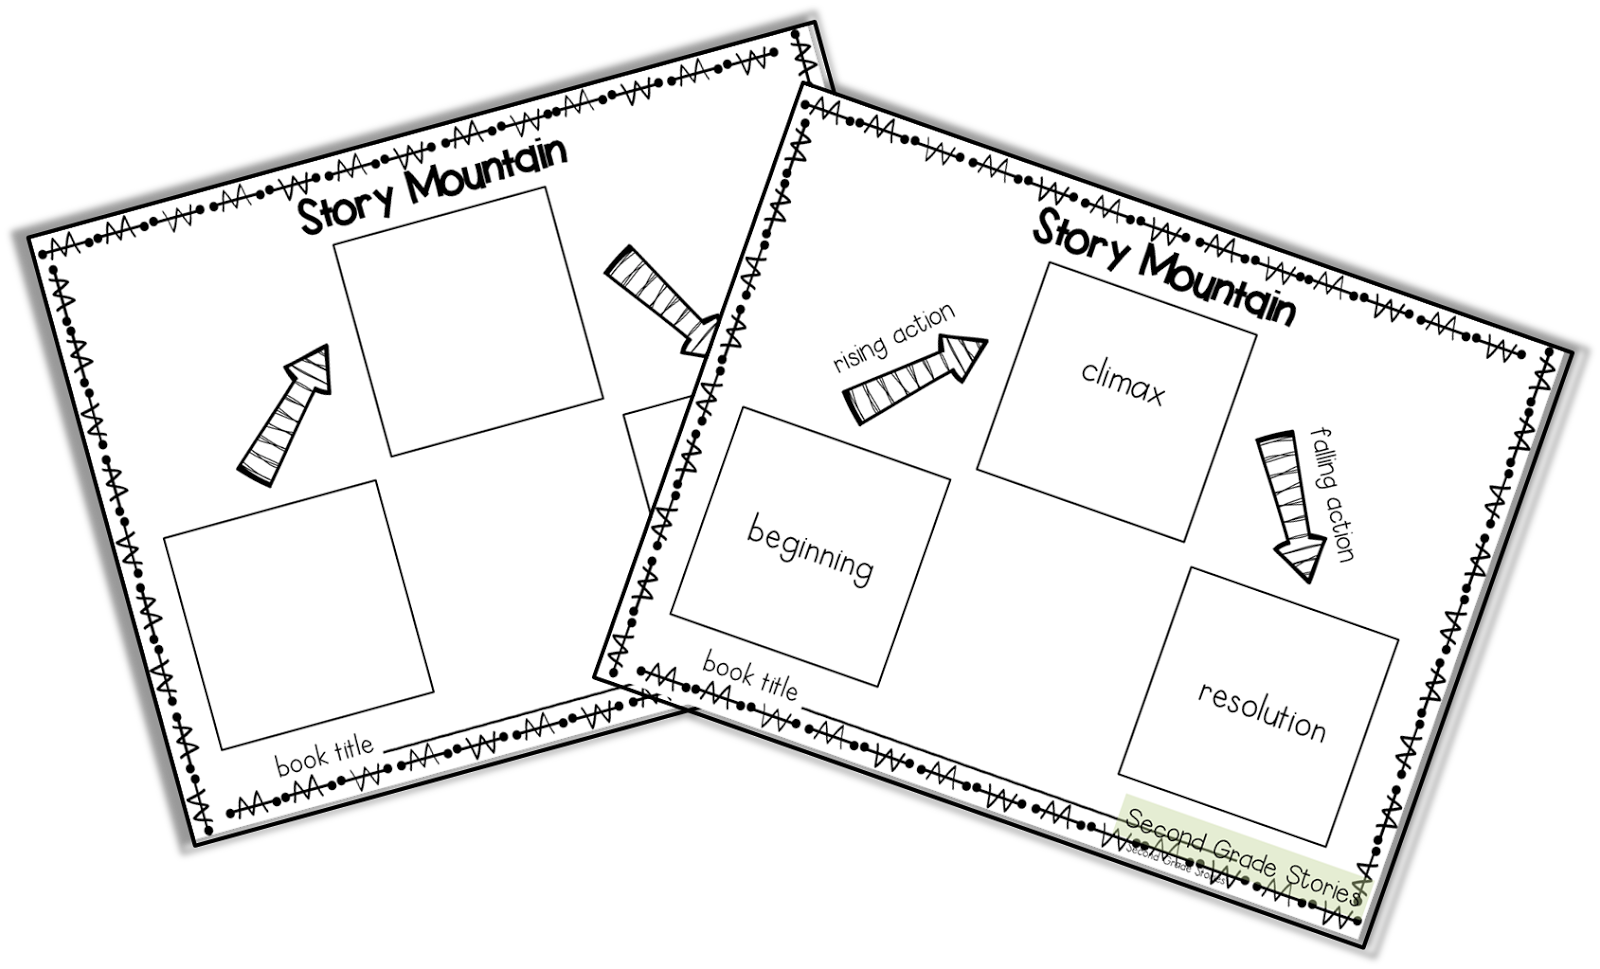 Worksheet Story Mountain Printable story mountains second grade stories httpsdrive google comfiled0b2ize mabvgmbdywsvfyzujlq0k